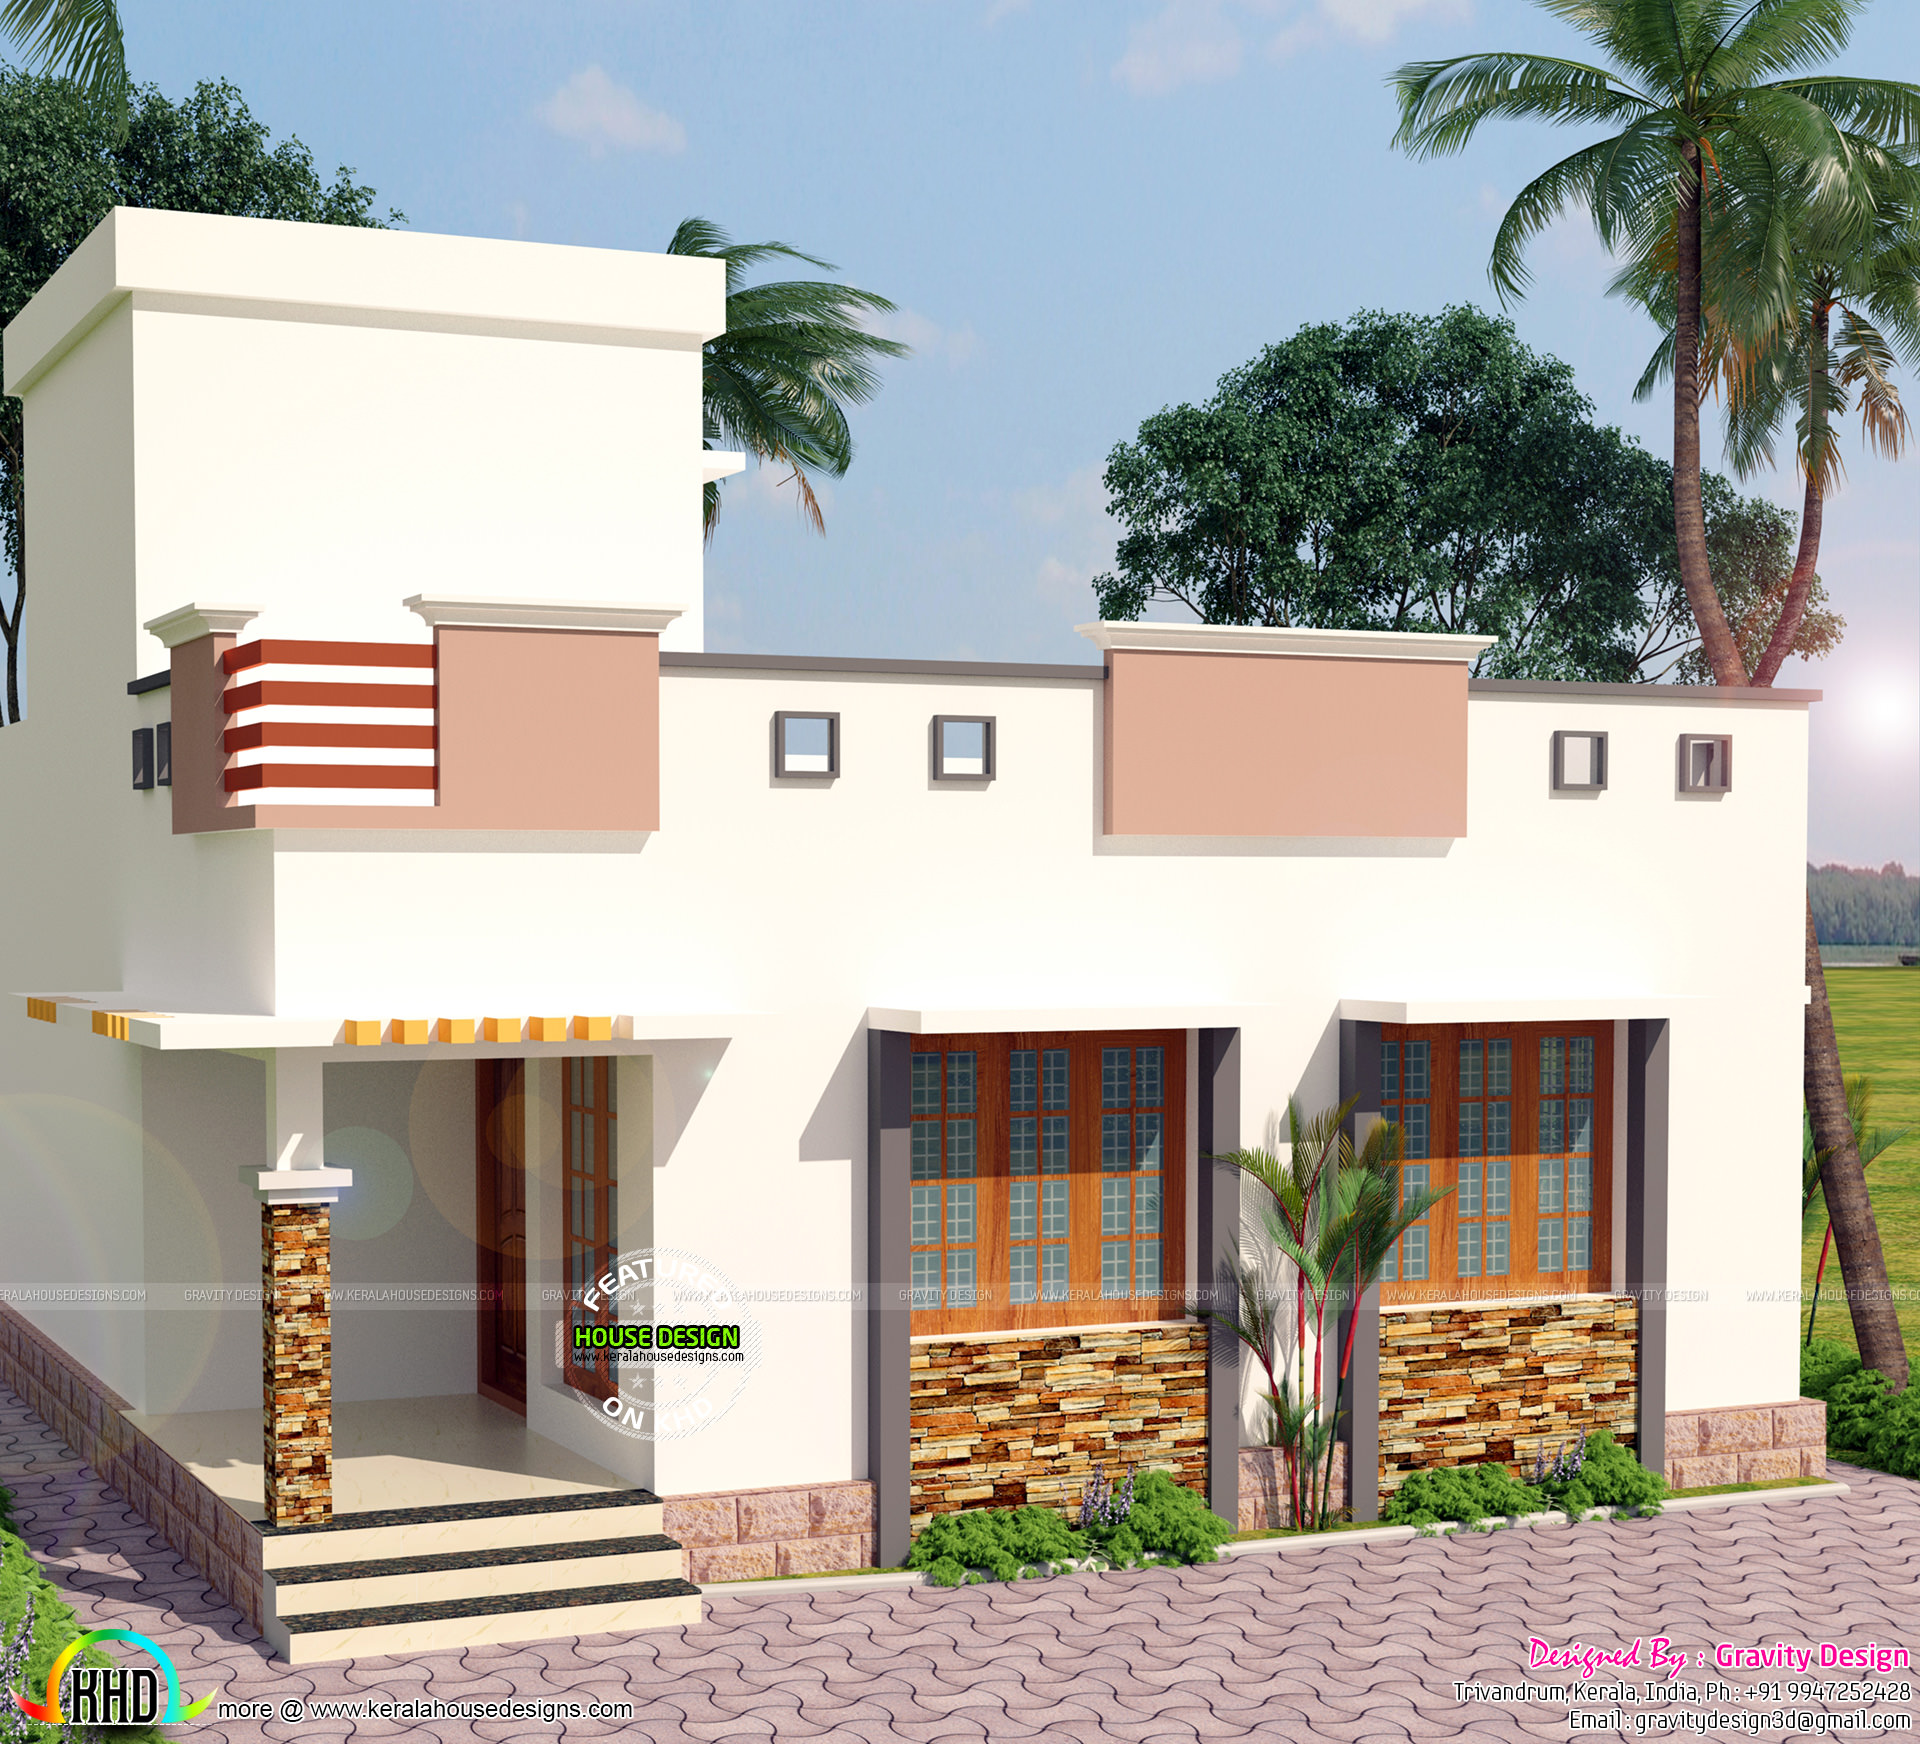 900 sq ft 2 bedroom modern home kerala home design and for 900 square feet house